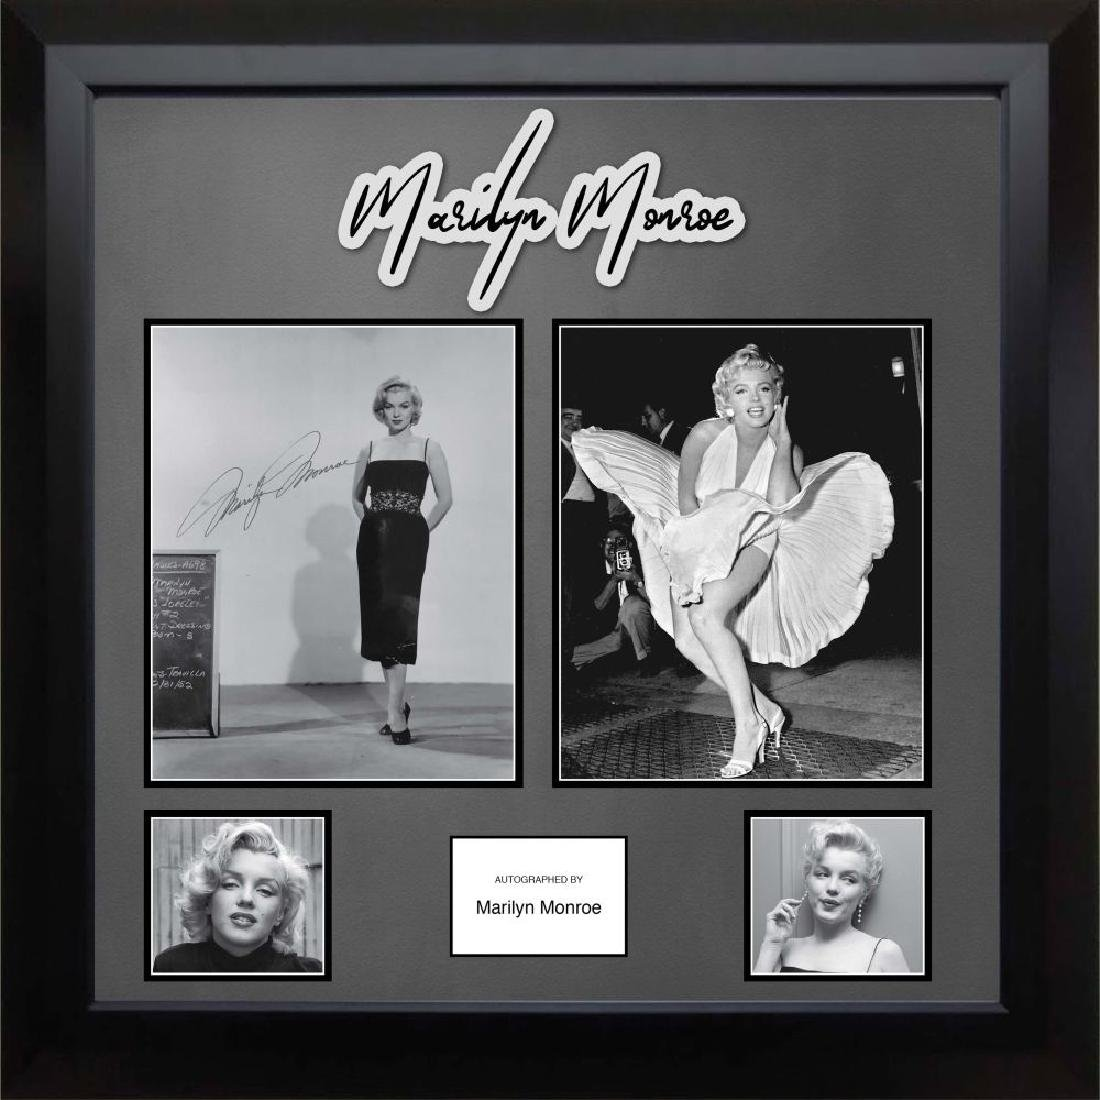 Marilyn Monroe Signed & Framed Photo Collage